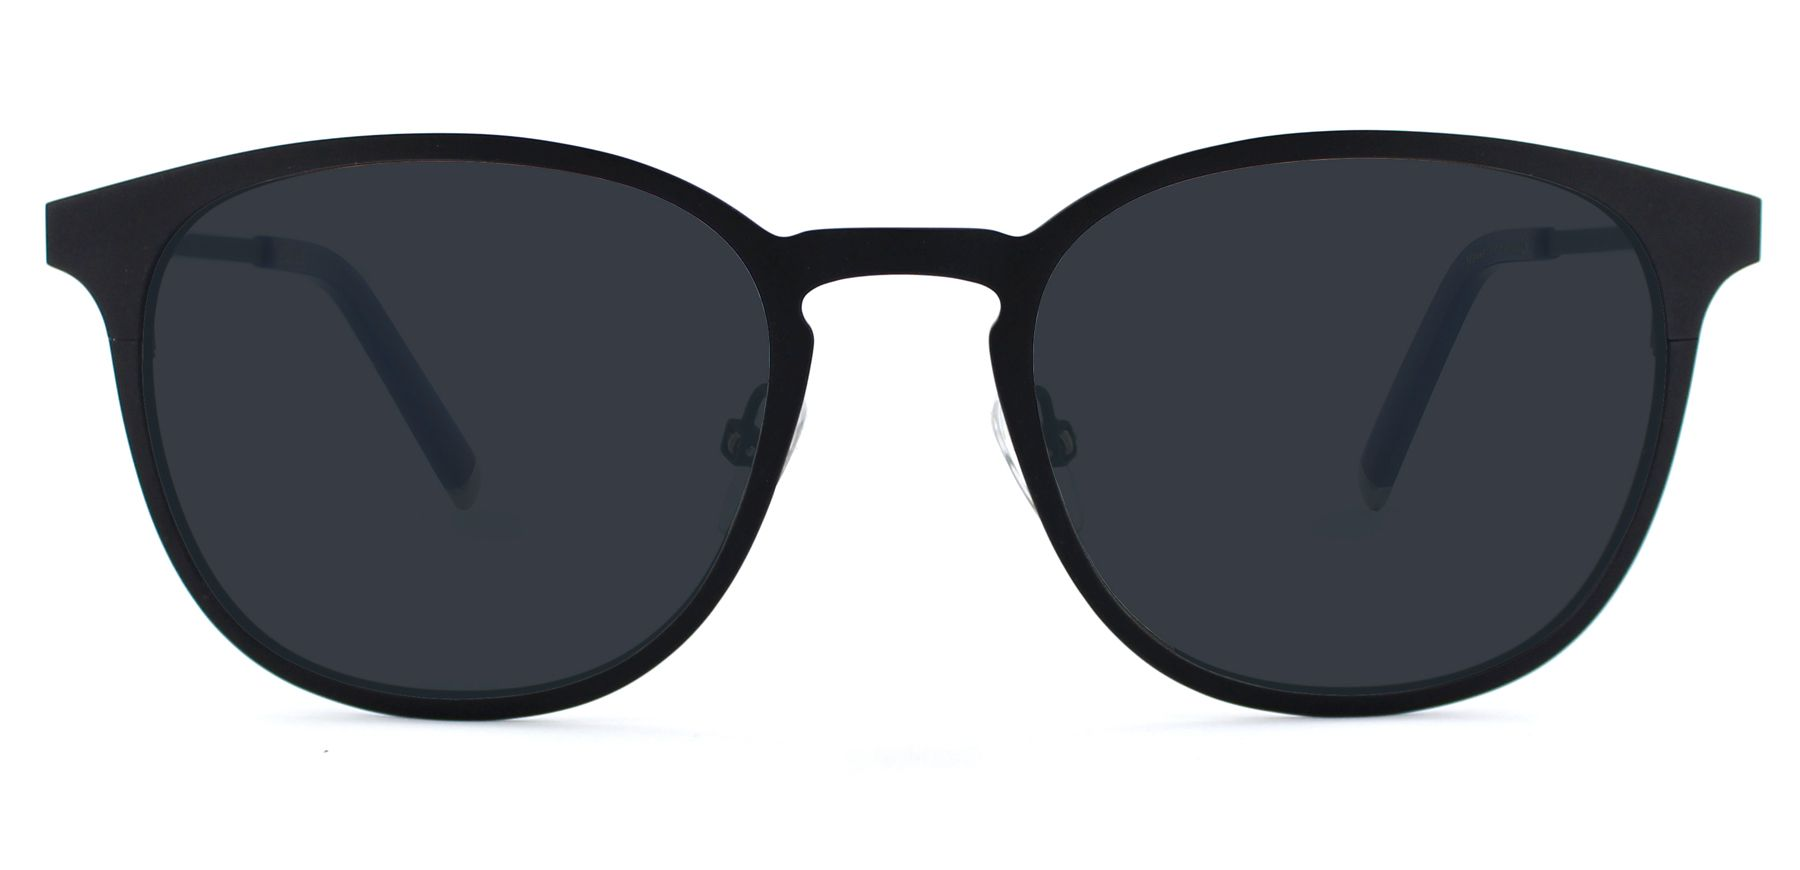 Matte Black with Neutral Grey Lenses